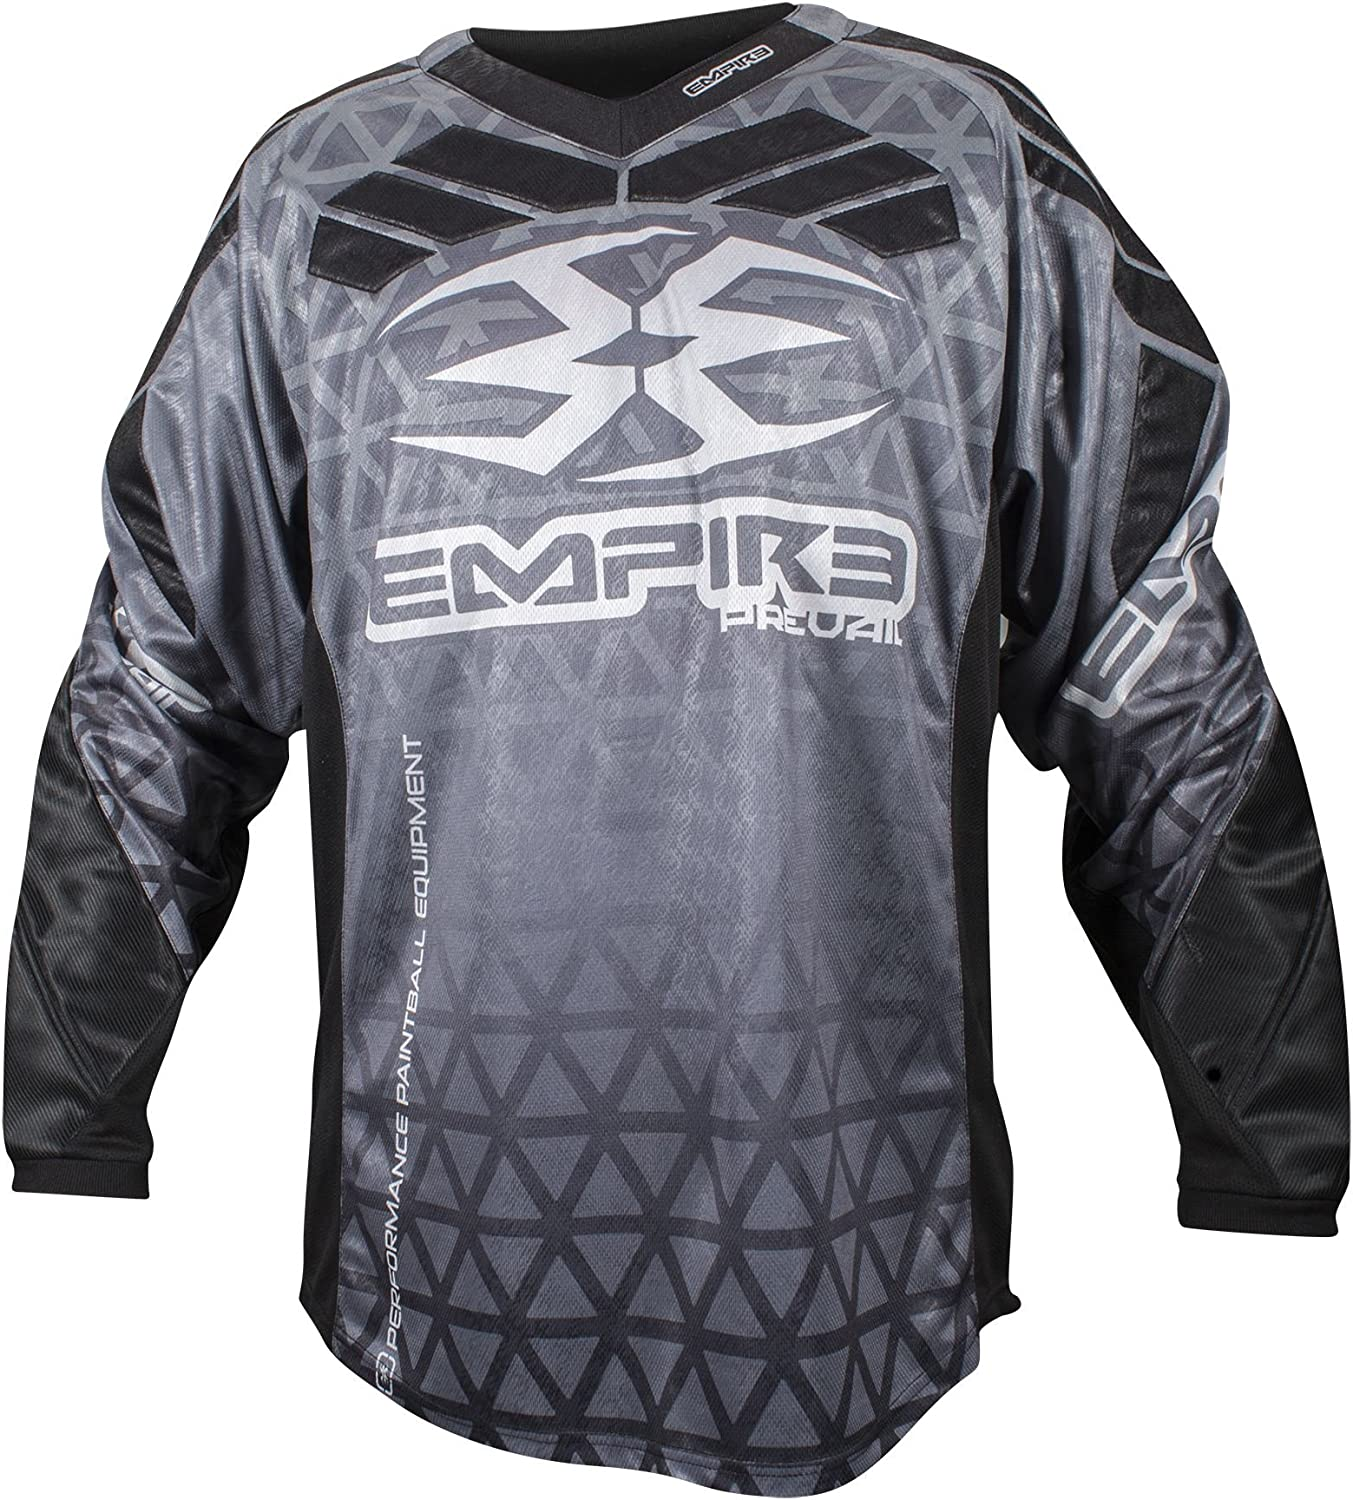 Empire Prevail Paintball Jersey F6  Black  Large